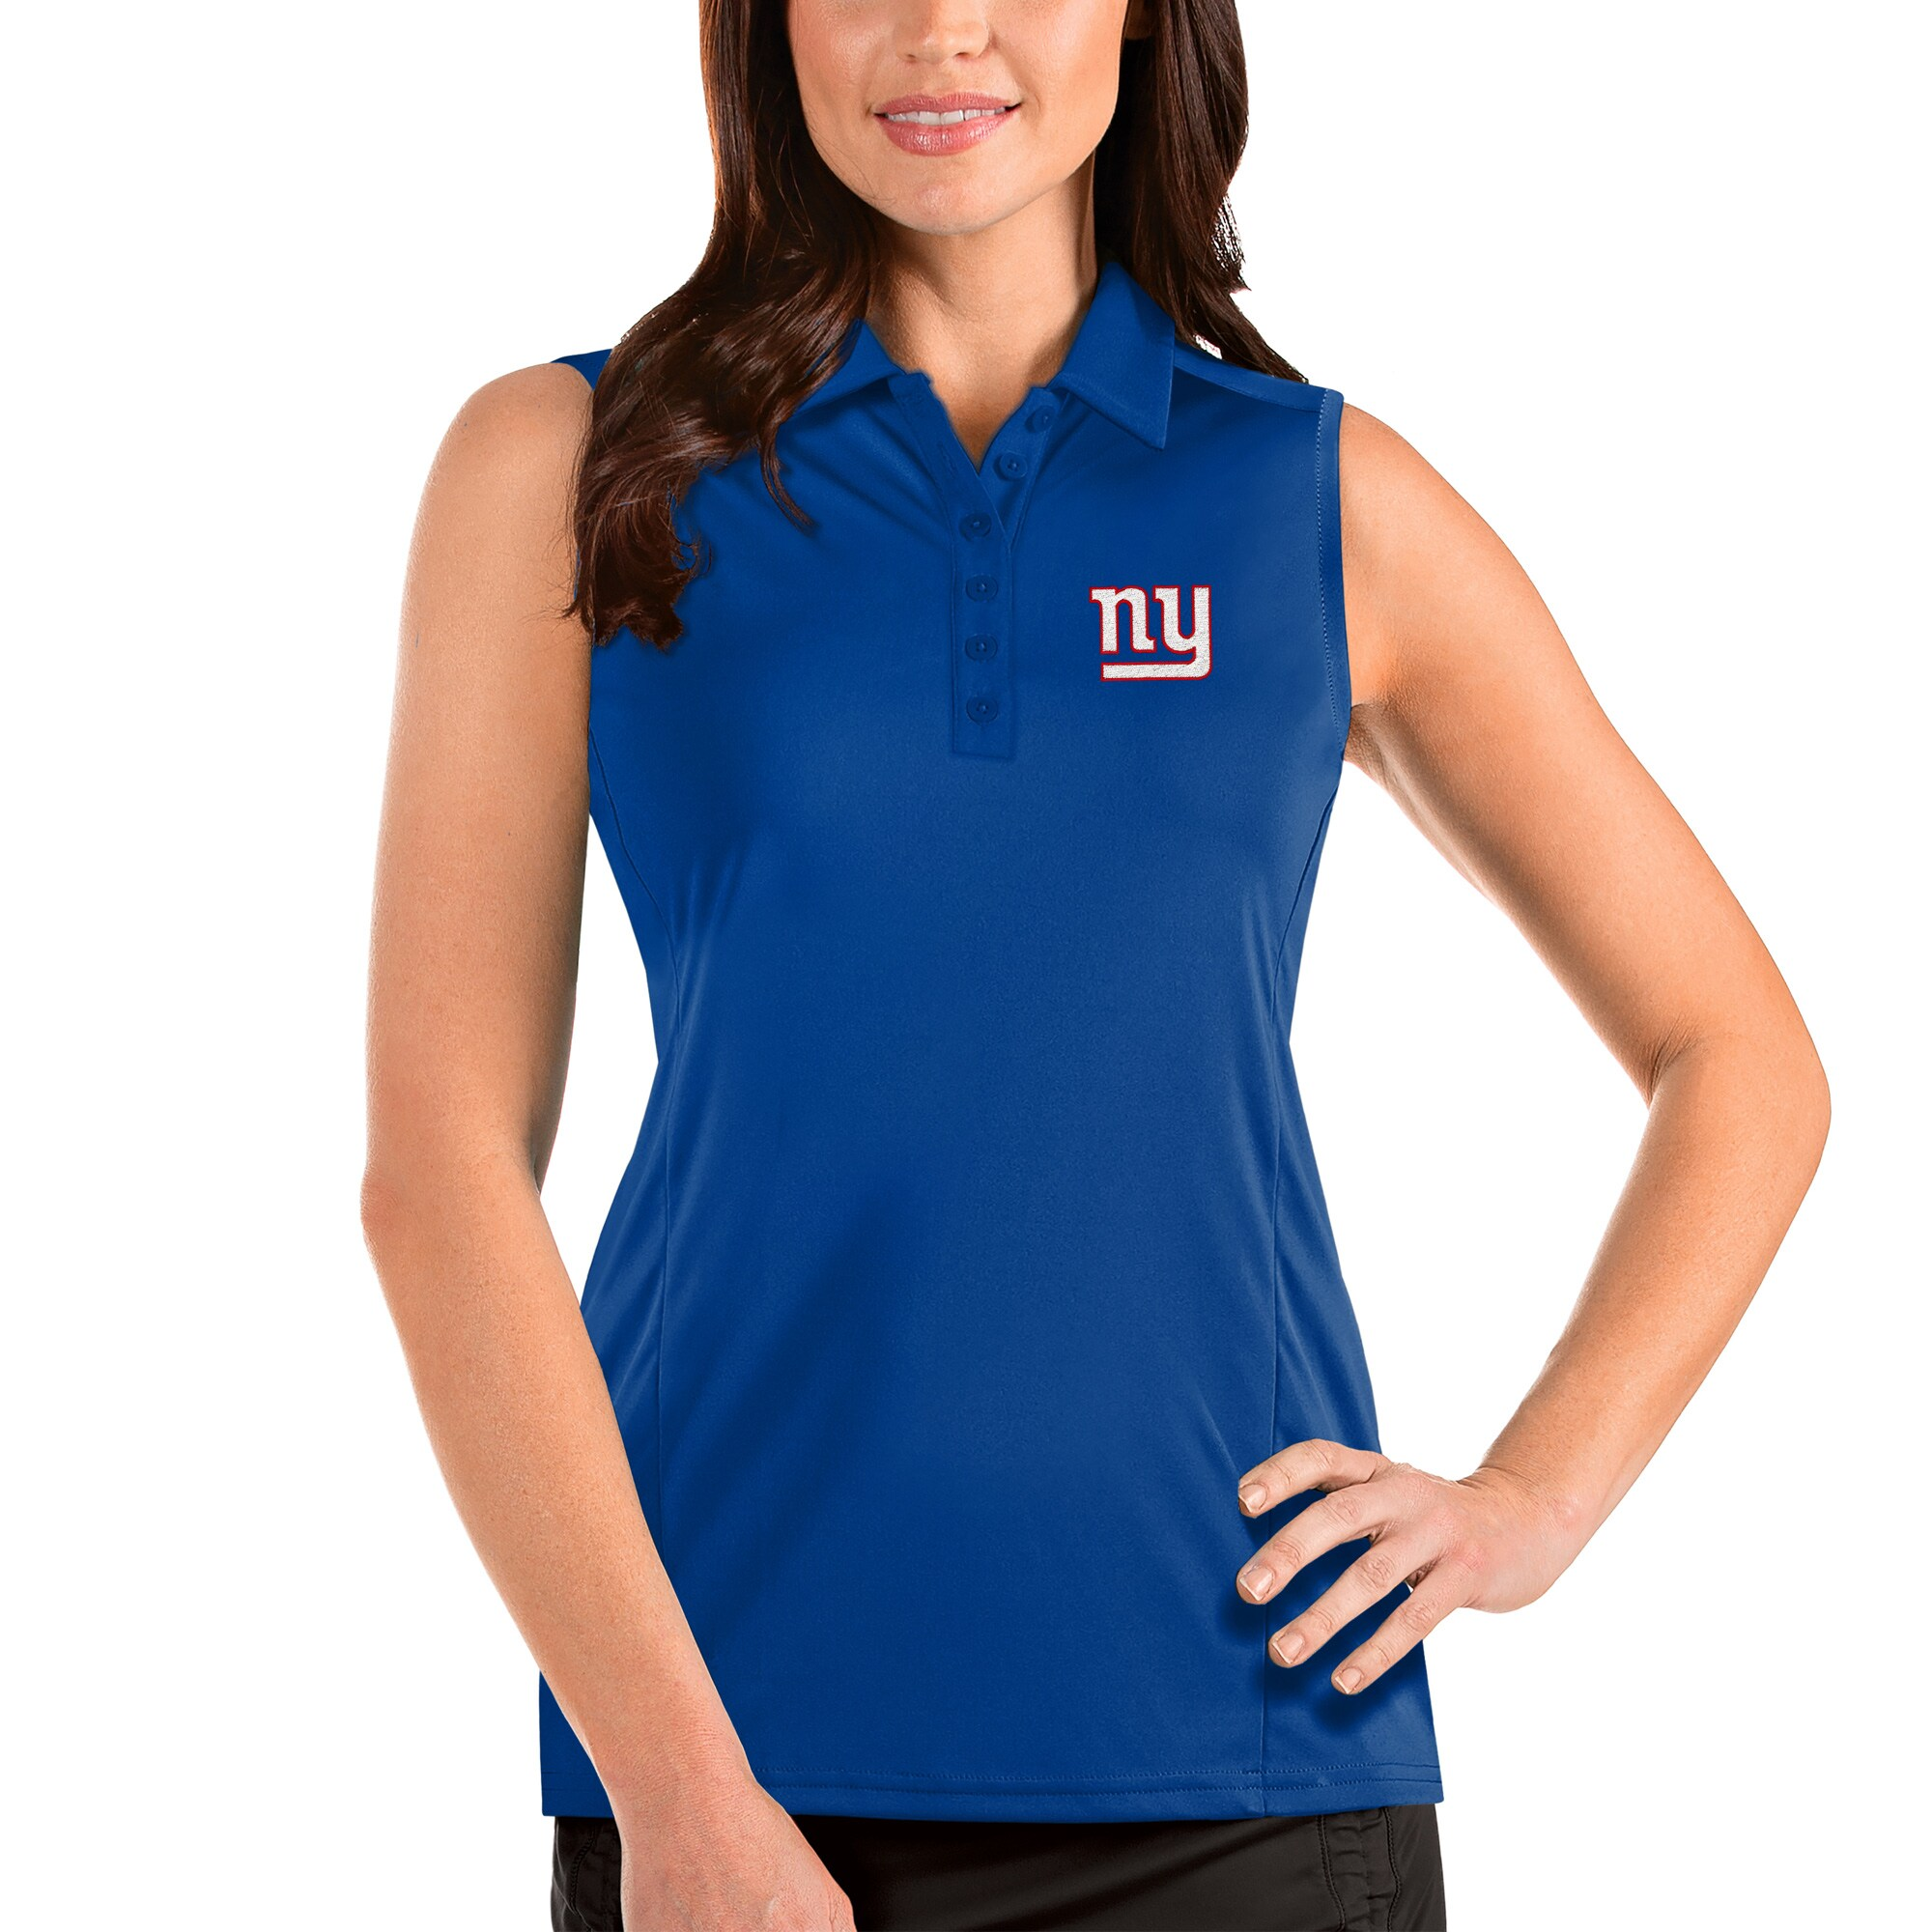 New York Giants Antigua Women's Sleeveless Tribute Polo - Royal